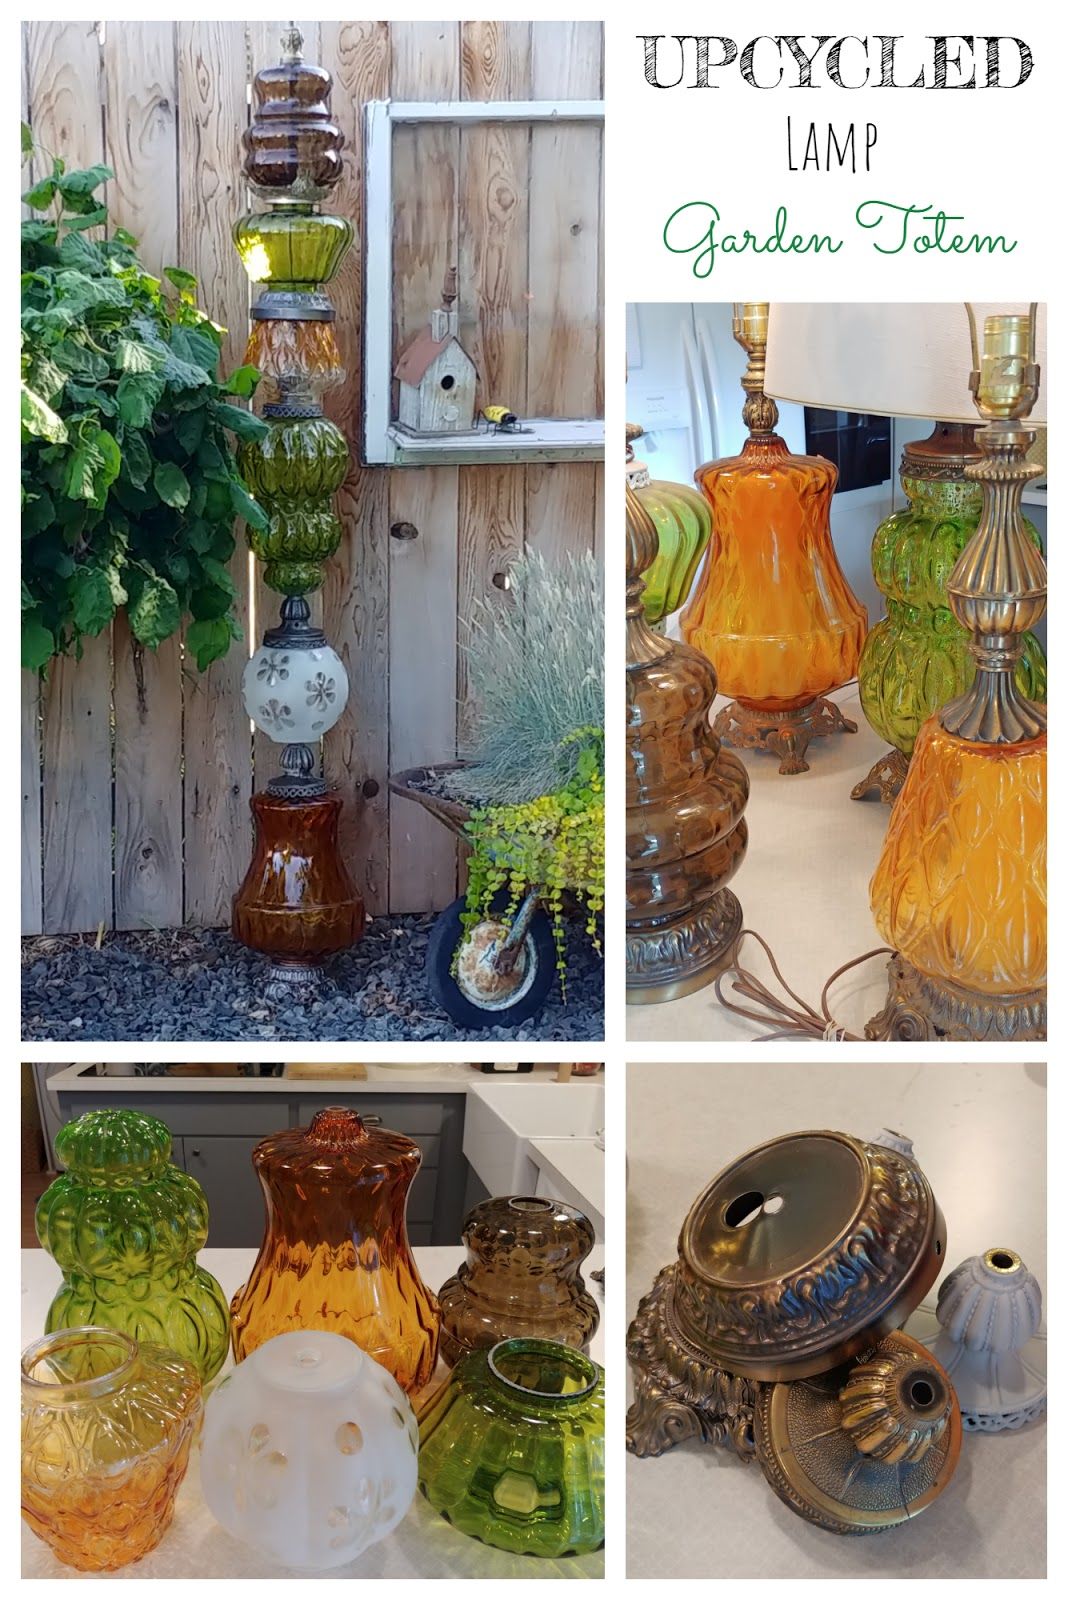 garden art totem pole made from recycled glass lamp globes